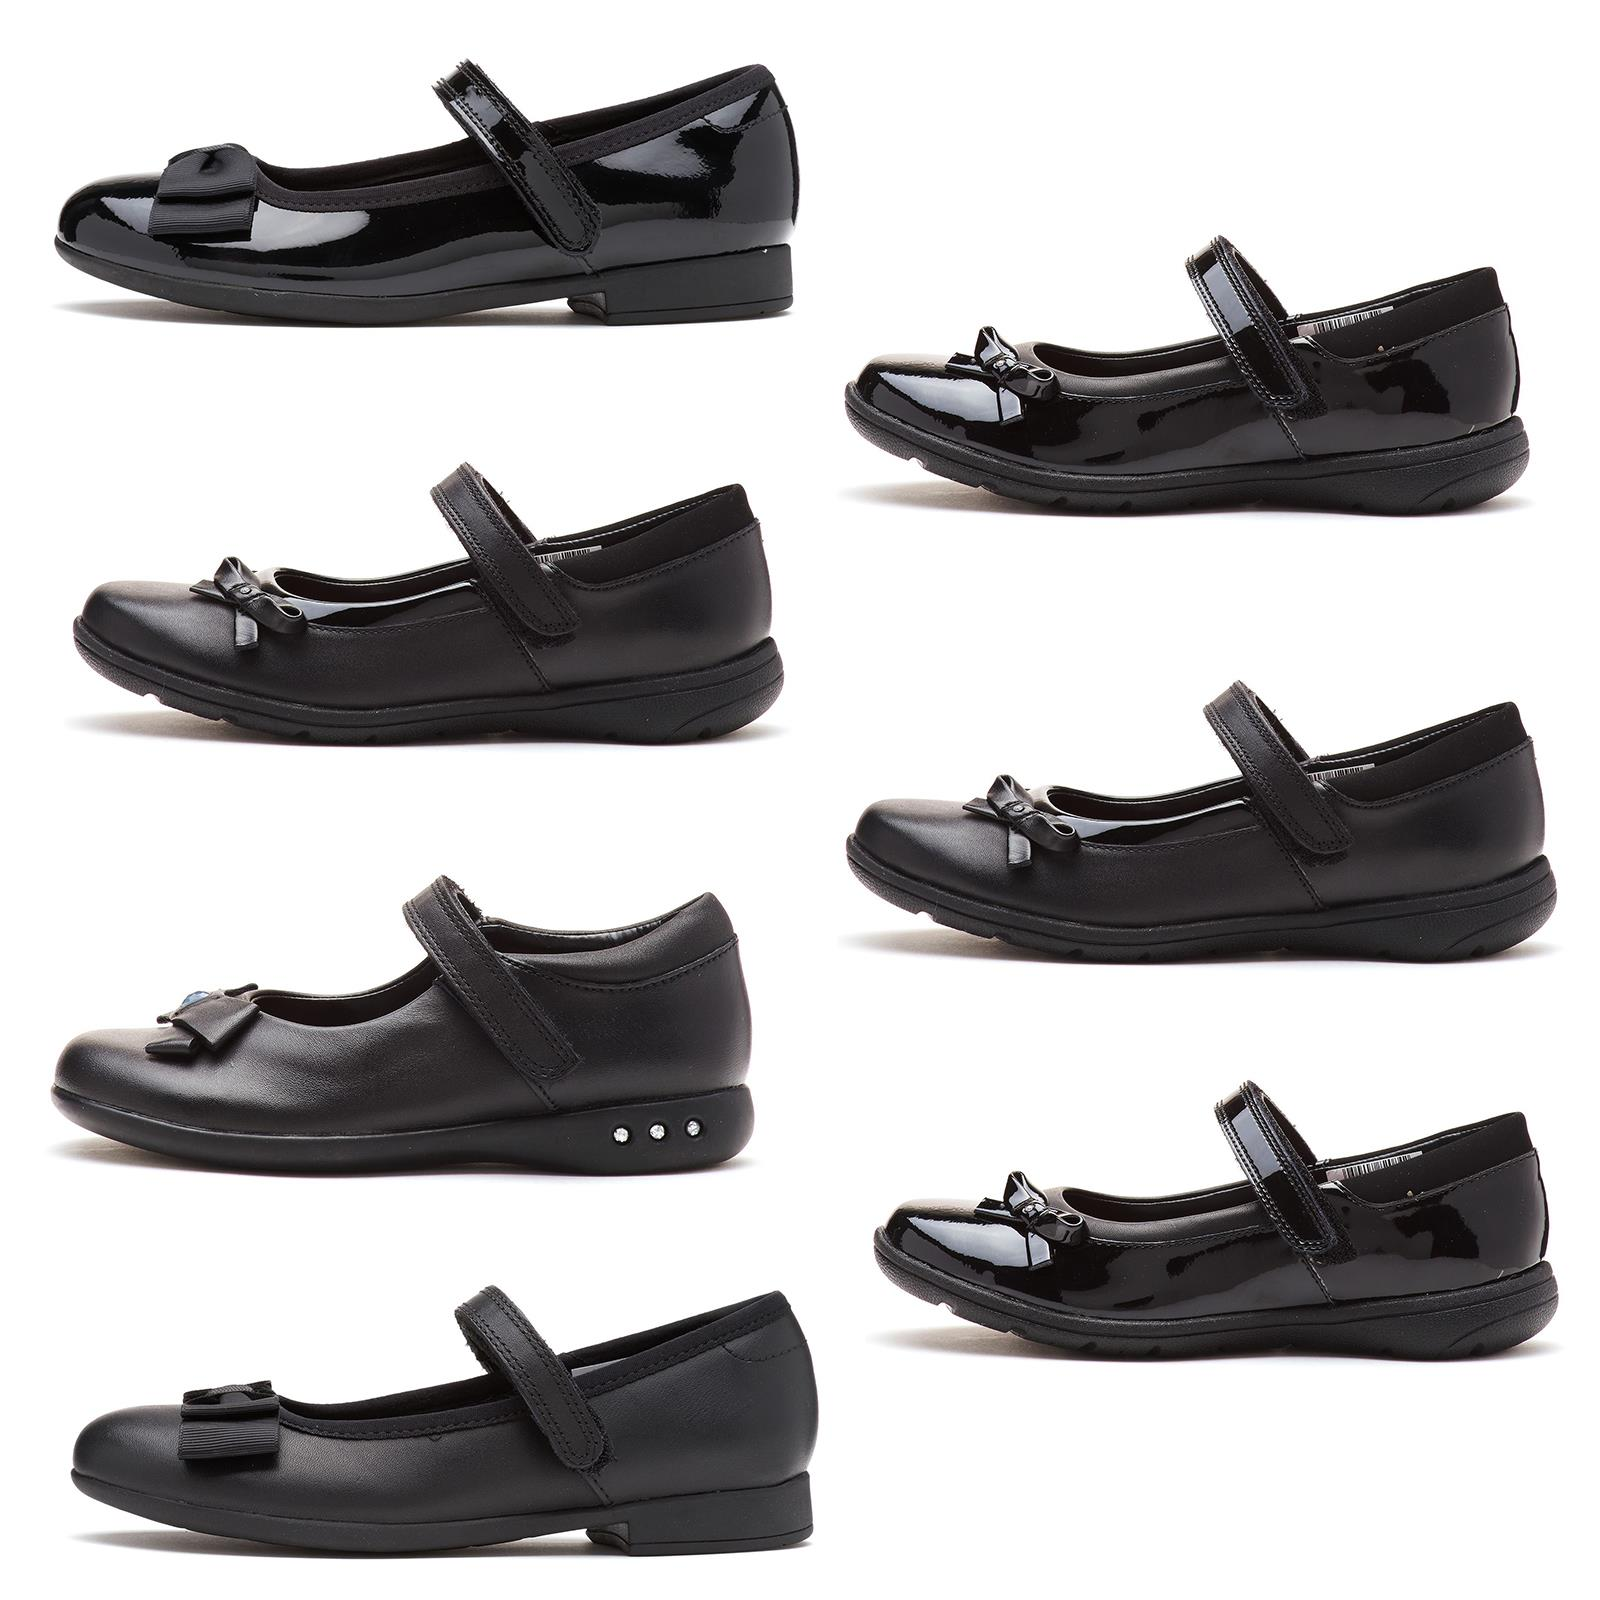 Or Patent Mary Jane Strap School Shoes